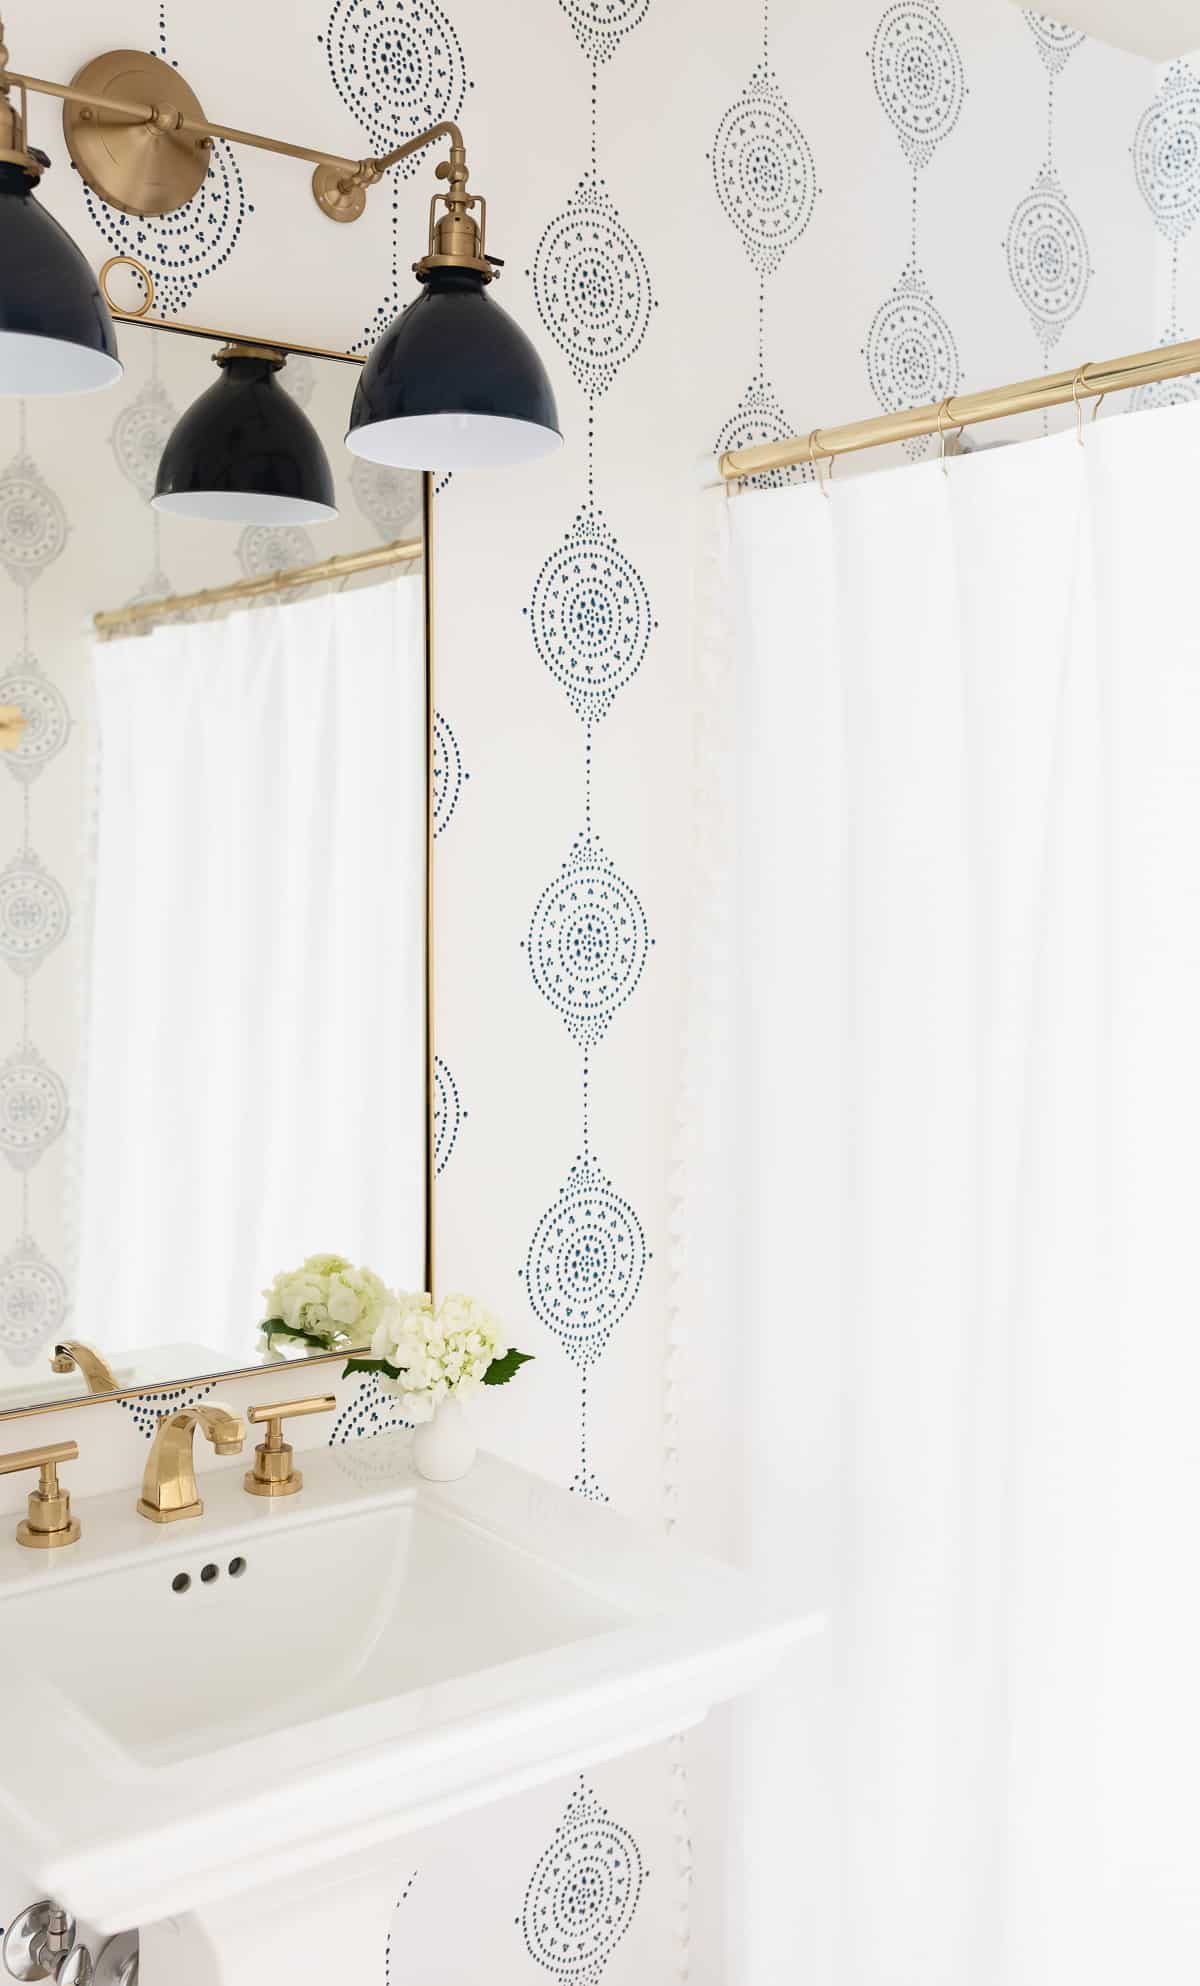 double wall light on bathroom mirror and sink